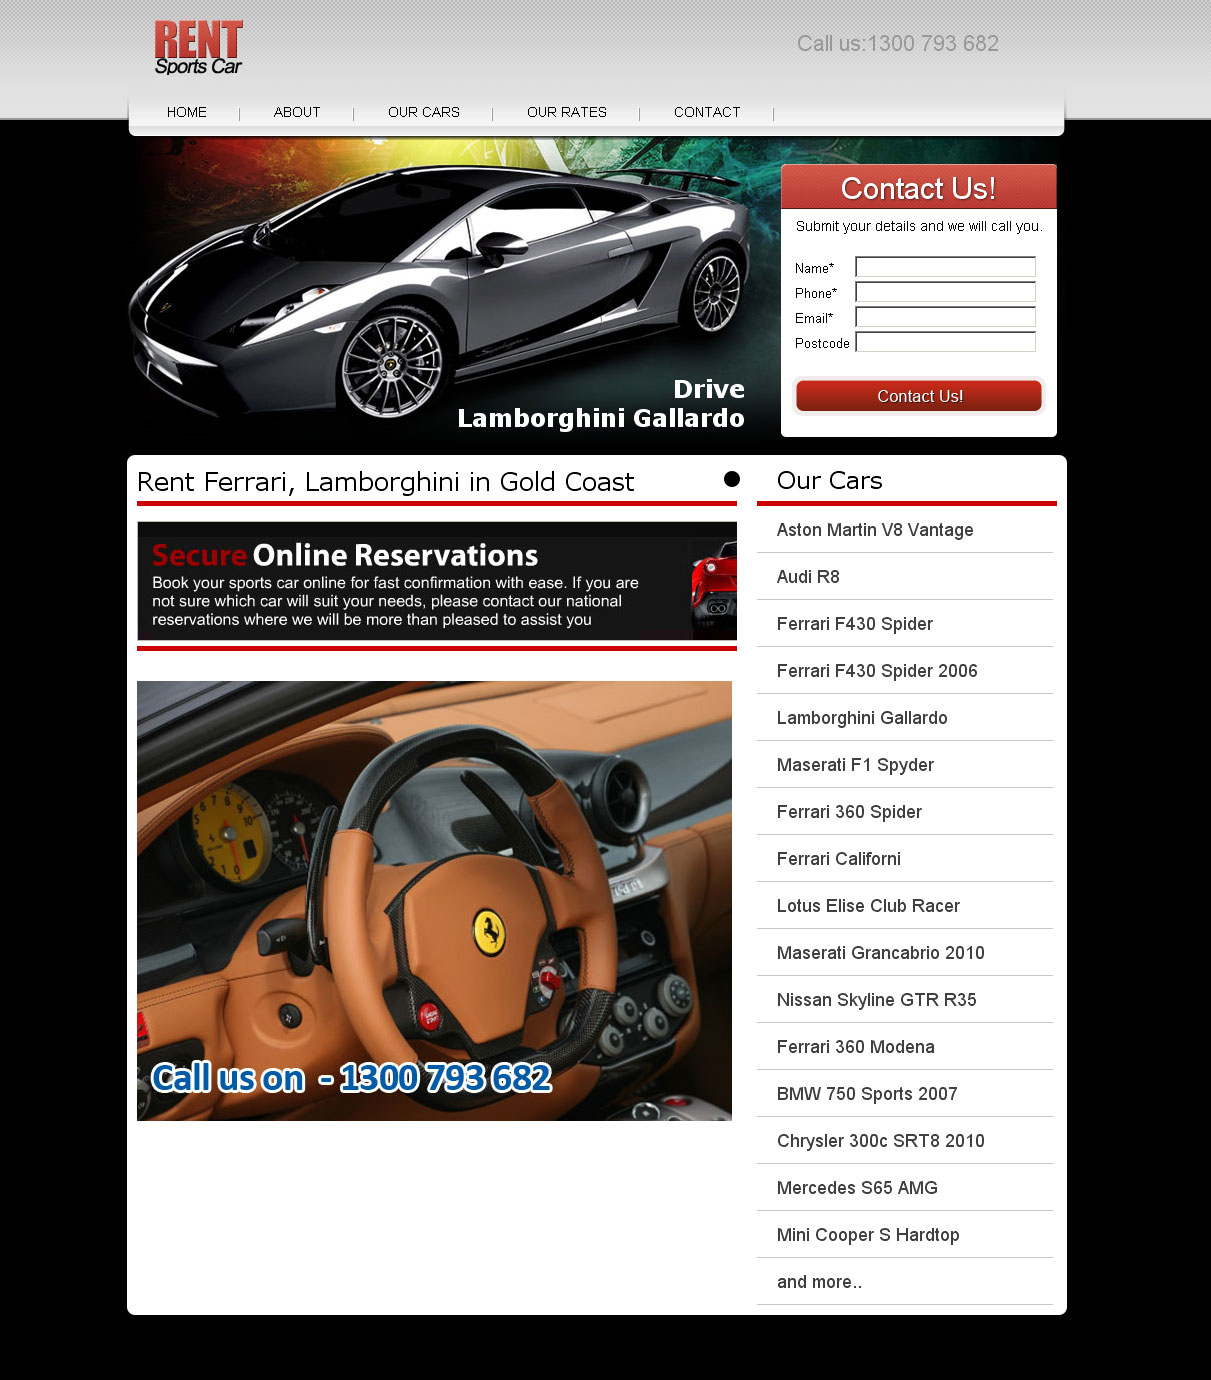 Rent Ferrari website design Melbourne